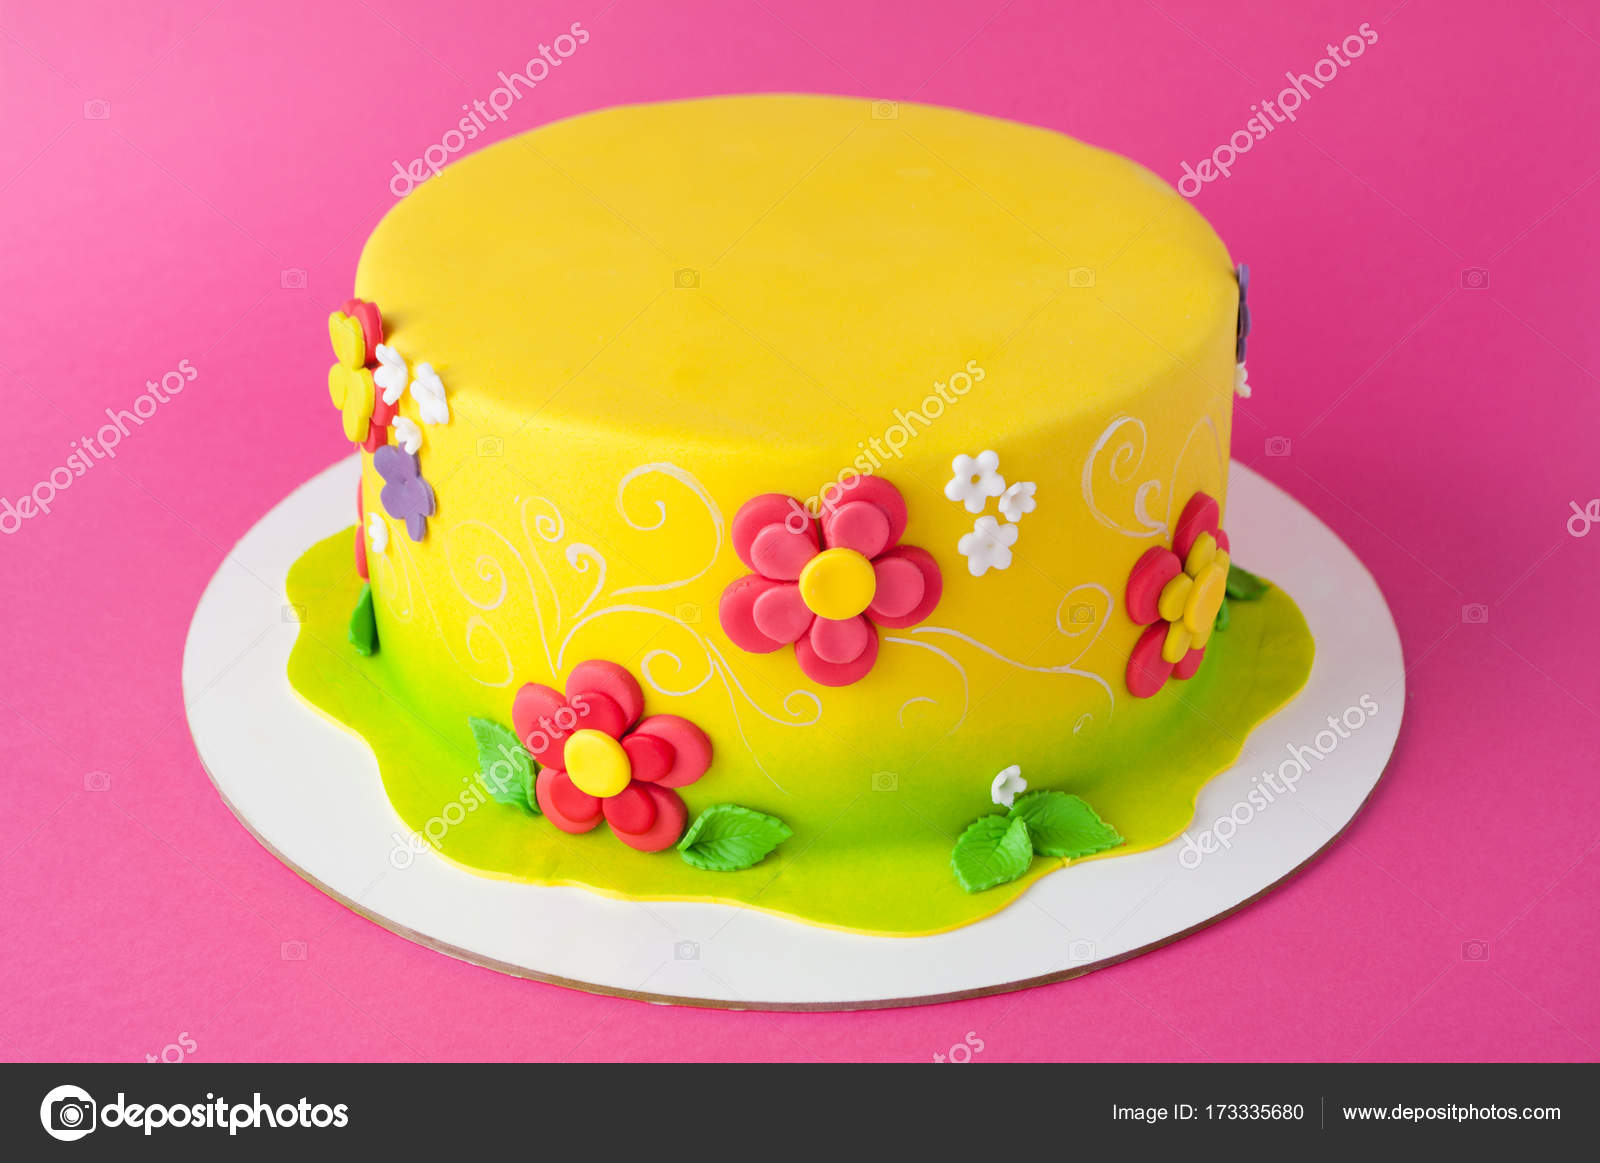 Colorful Childrens Birthday Cake Made Of Yellow Mastic Decorated With Pink Flowers Leaves Pattern On A Background Close Up Cutout